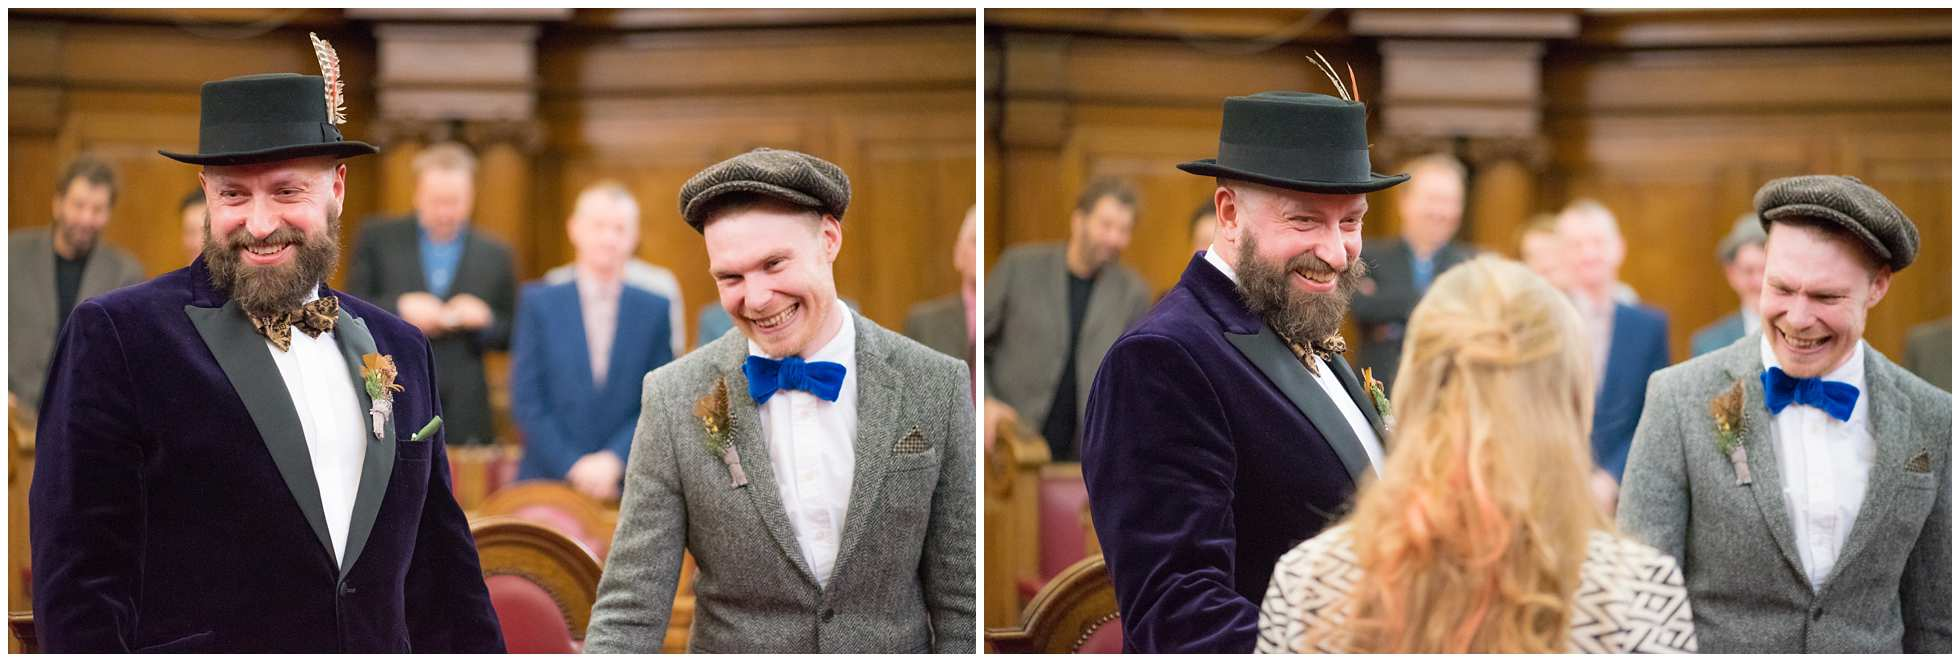 Laughter at the wedding of the year